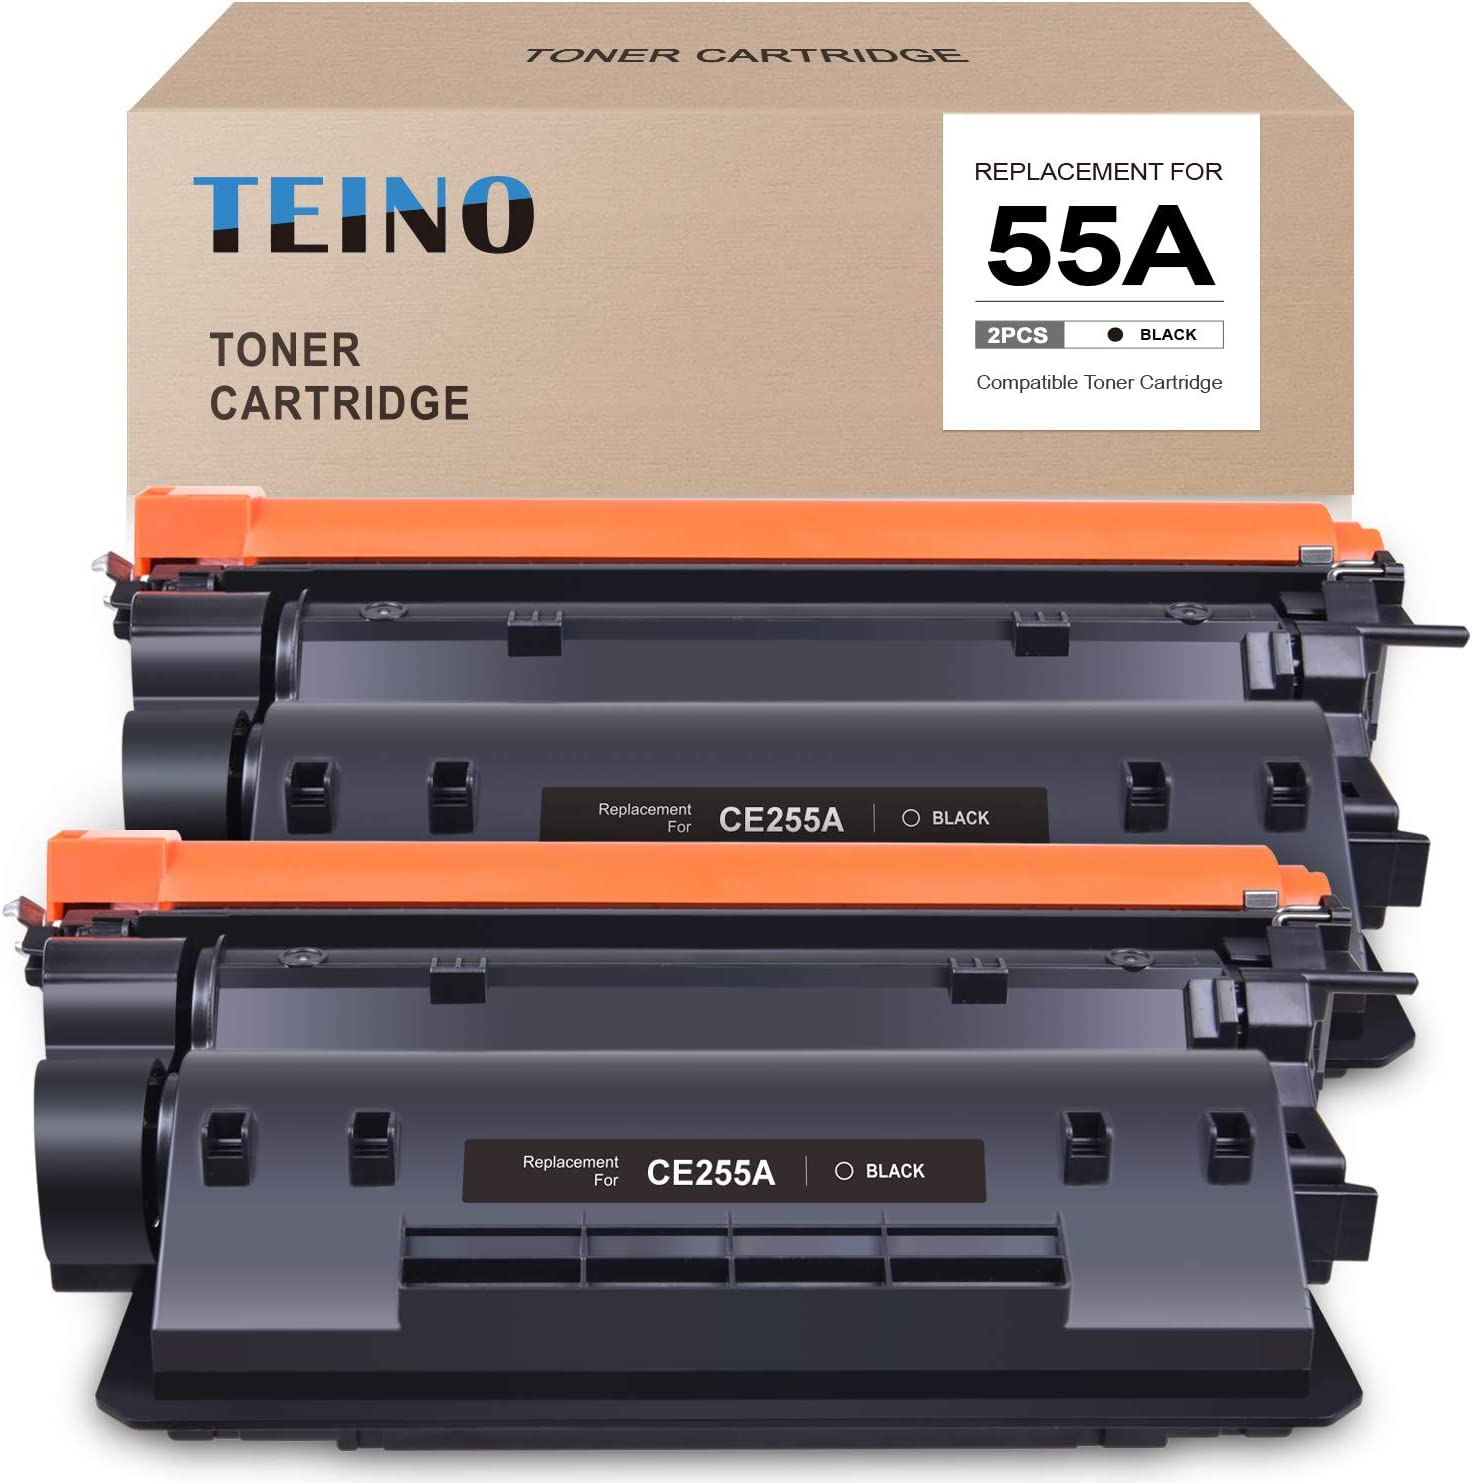 TEINO Compatible Toner Cartridge Replacement for HP 55A CE255A use with HP Laserjet Enterprise P3015n P3015dn Laserjet Pro MFP M521dn M521dw Laserjet Enterprise 500 MFP M525dn M525f (Black, 2-Pack)